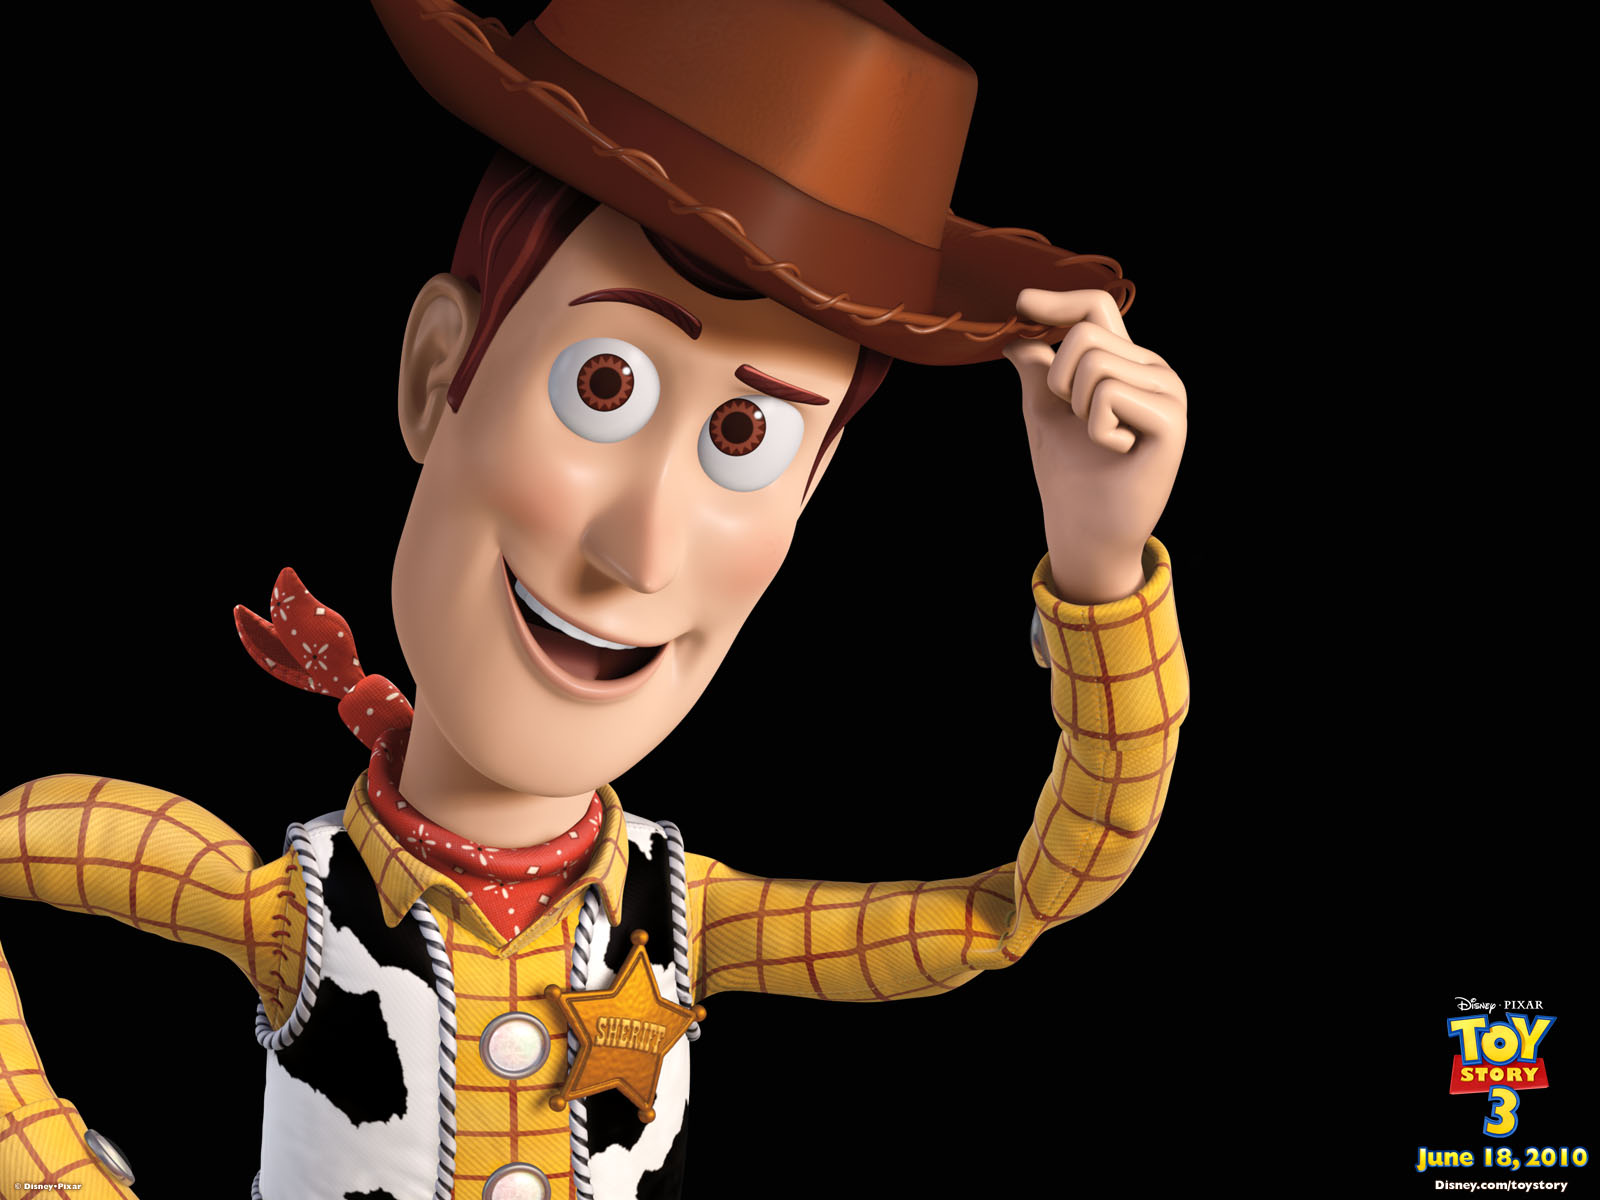 toy story 3 wallpaper and background image | 1600x1200 | id:333938